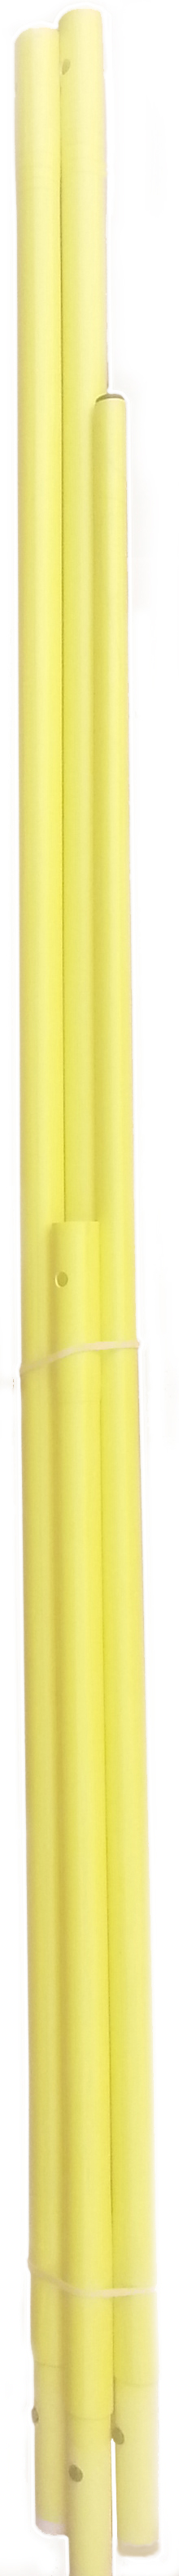 kit perche jaune 6m